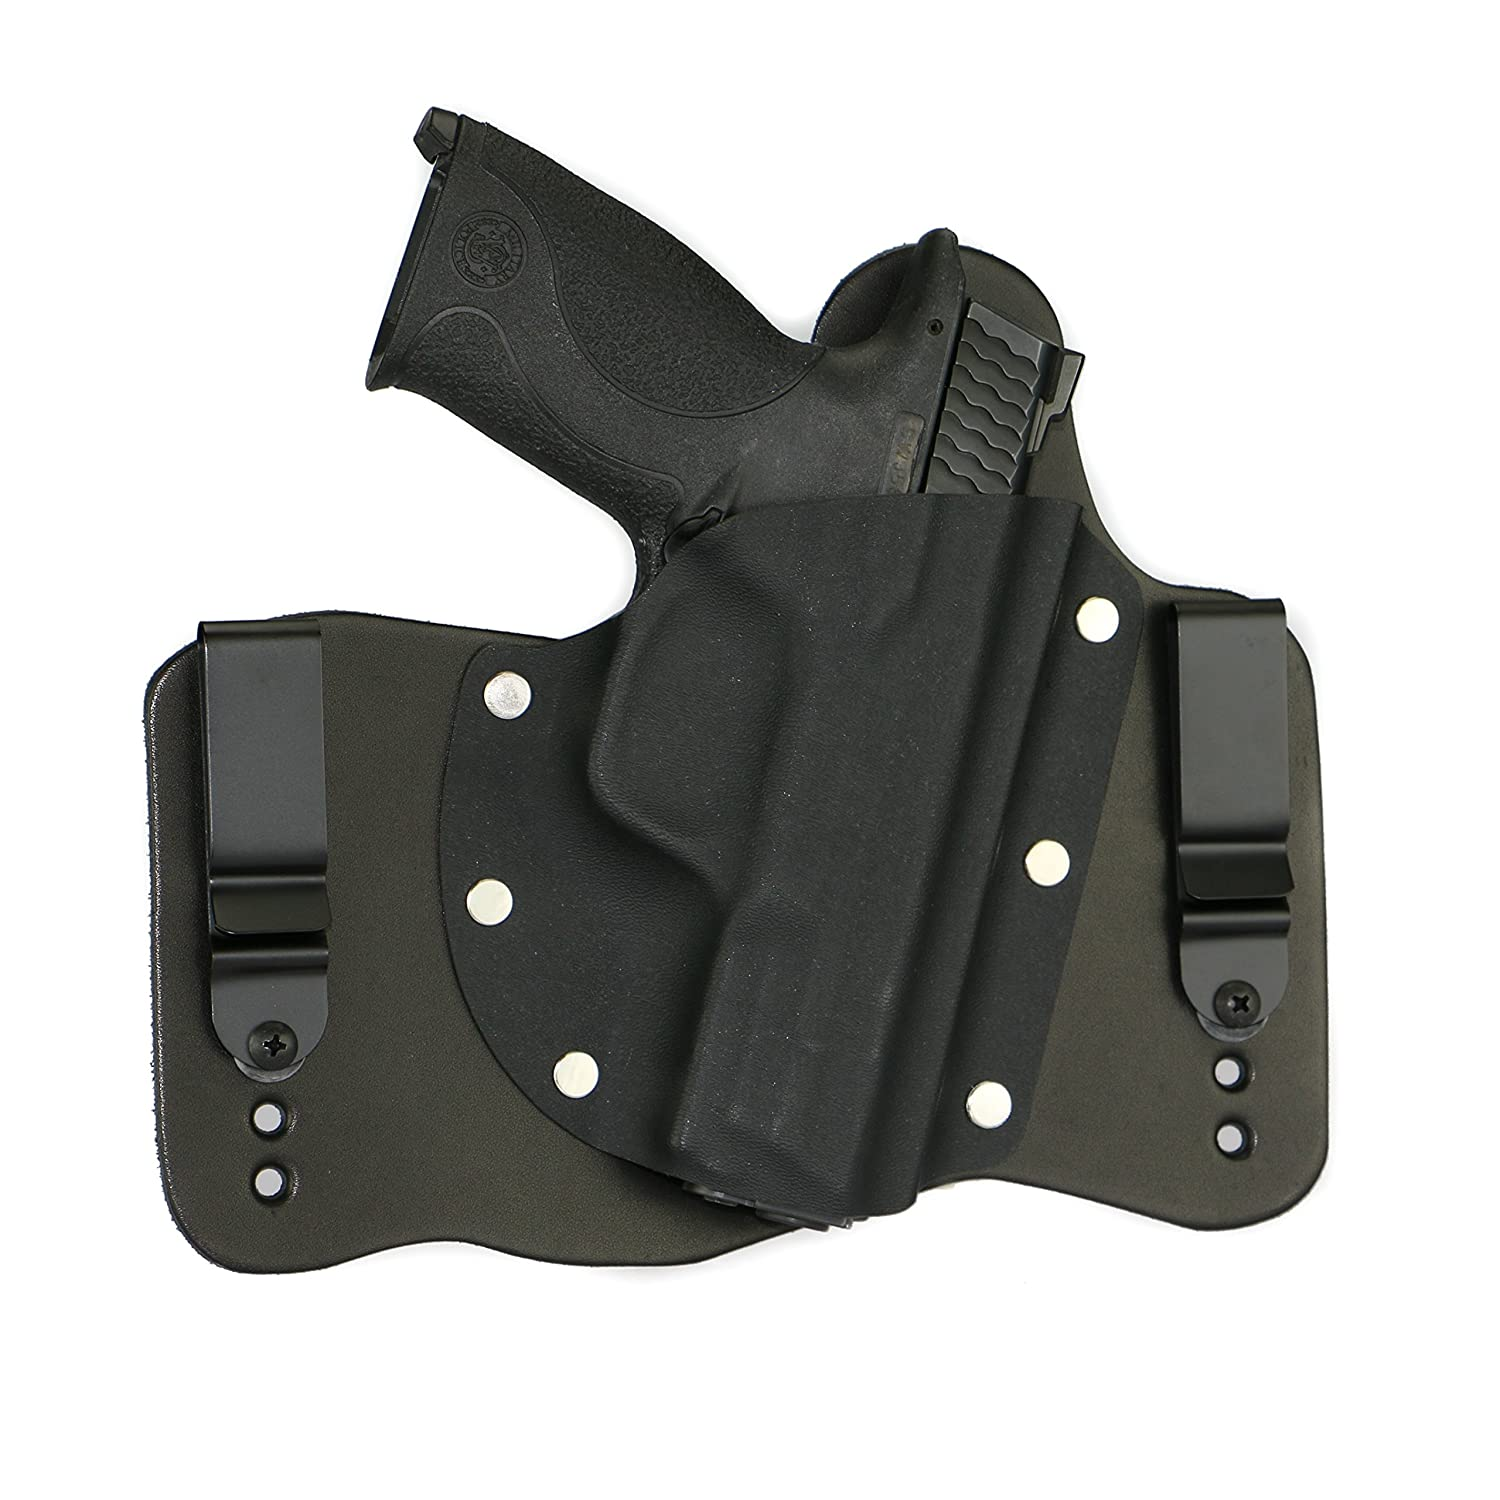 Amazon.com : Gearcraft Holsters - S & W J-Frame IWB Concealed Carry ...